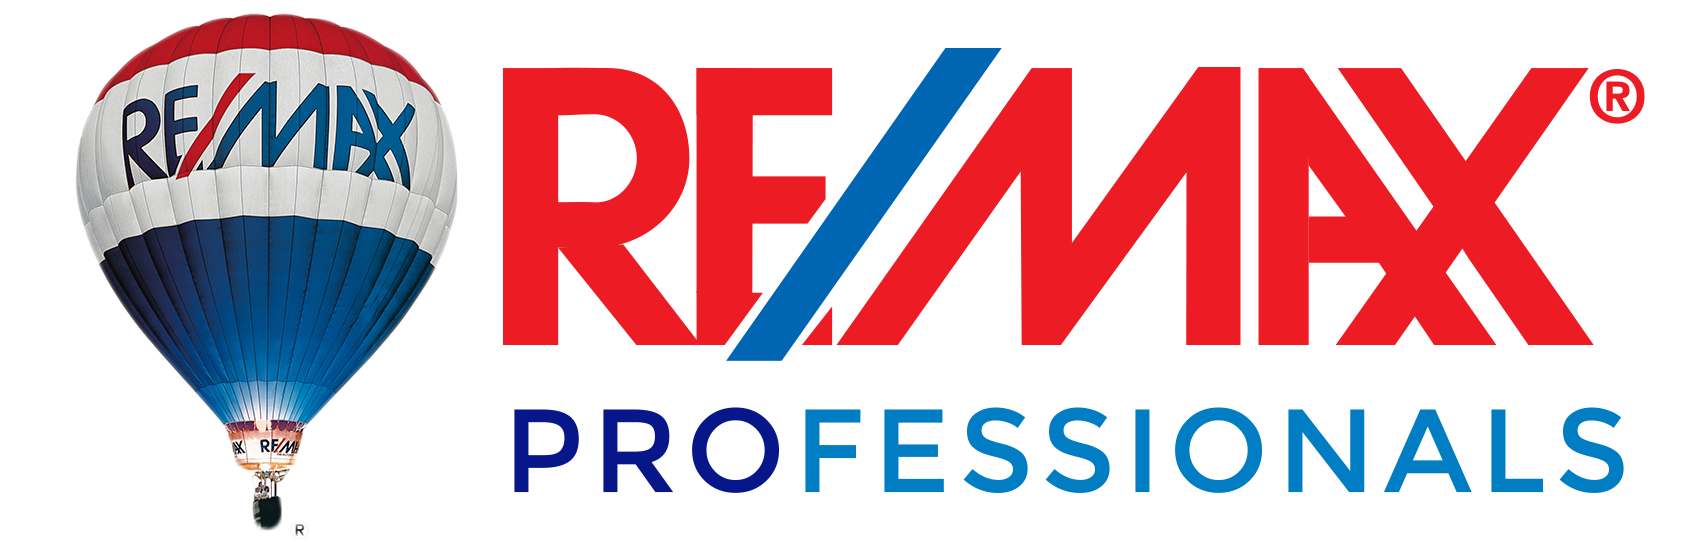 REMAX-Professionals-Logo-2015-Transparent-with-Balloon.png